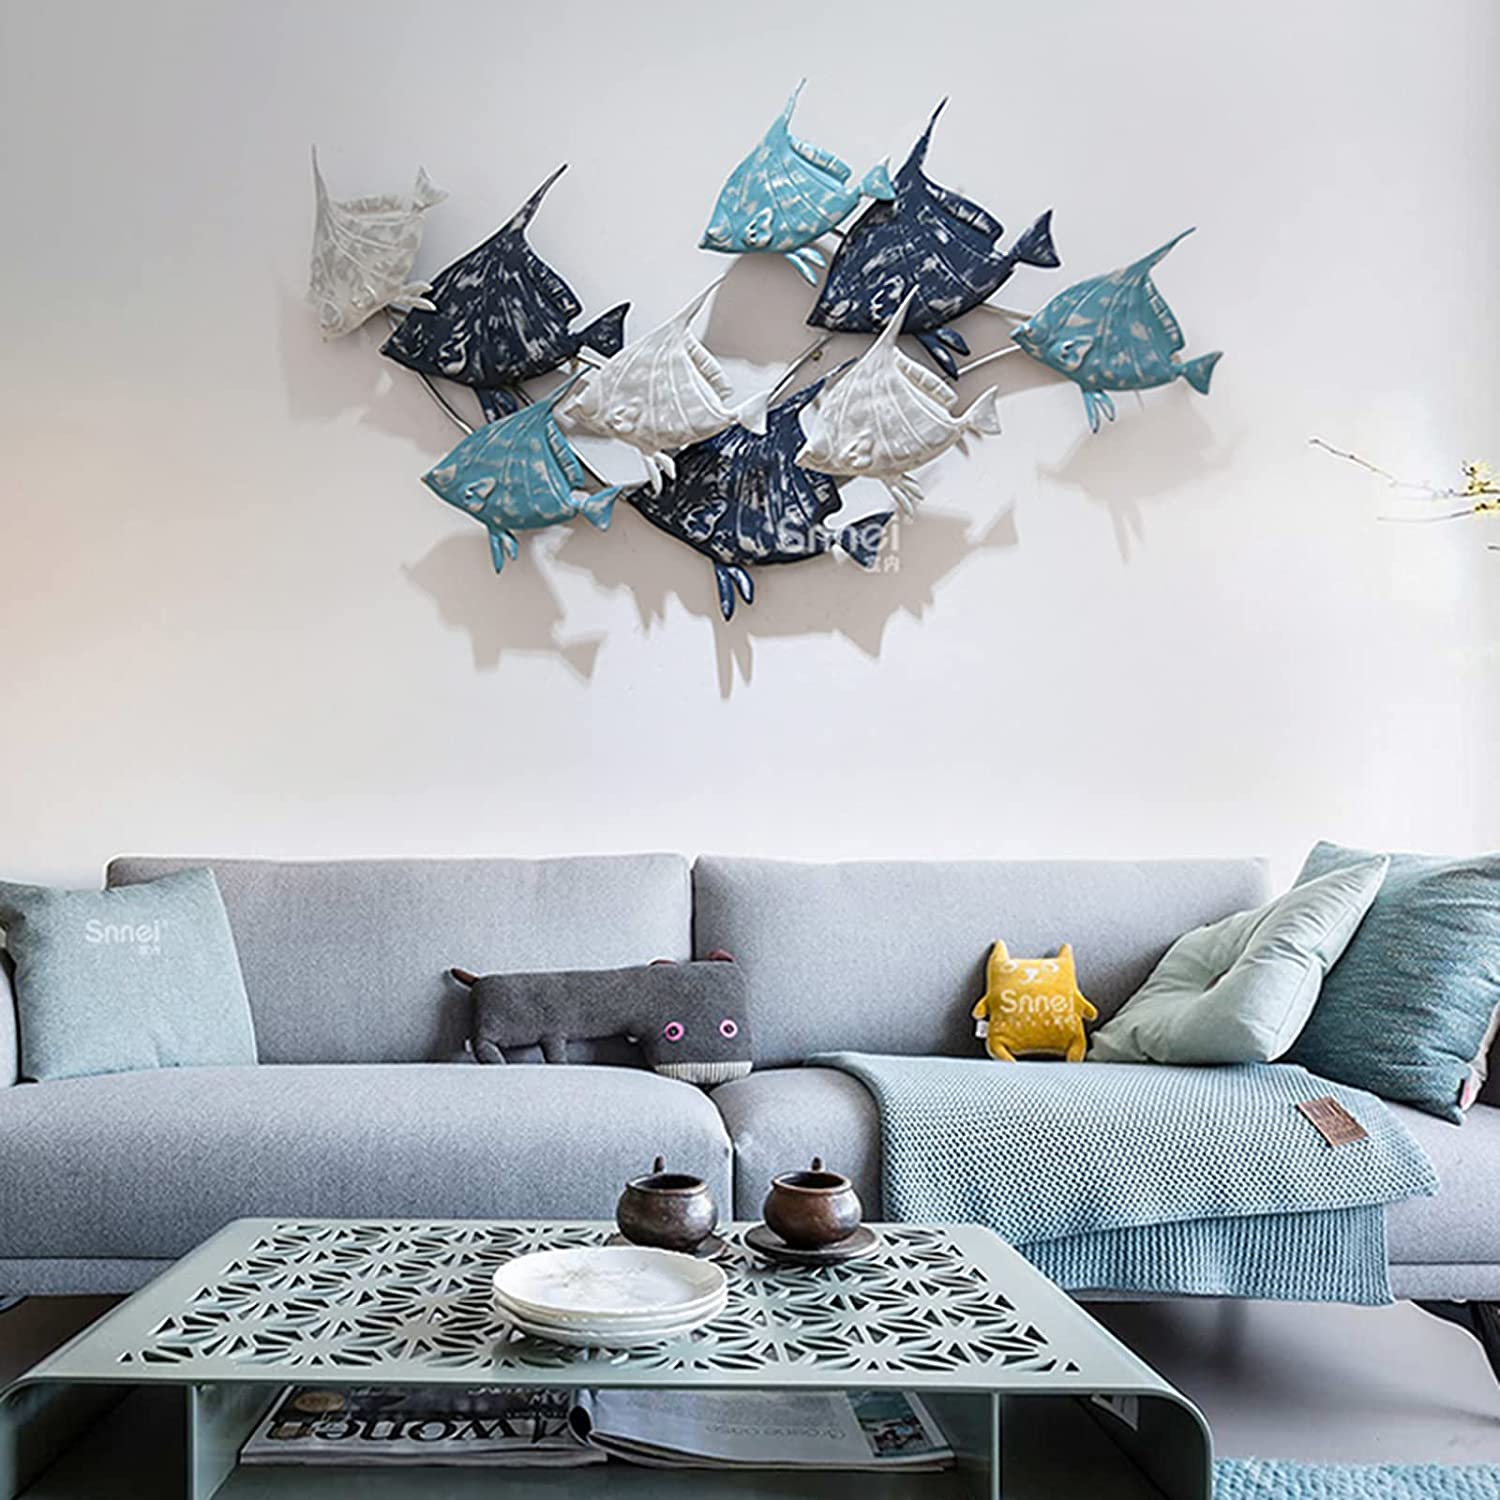 ANYURAN Metal Wall Sculpture Fish Decor, 3D Stereo Metal Wall Art Sculpture, Nautical Style Fish Aqua Theme Iron Walls Decoration for Living Room,B